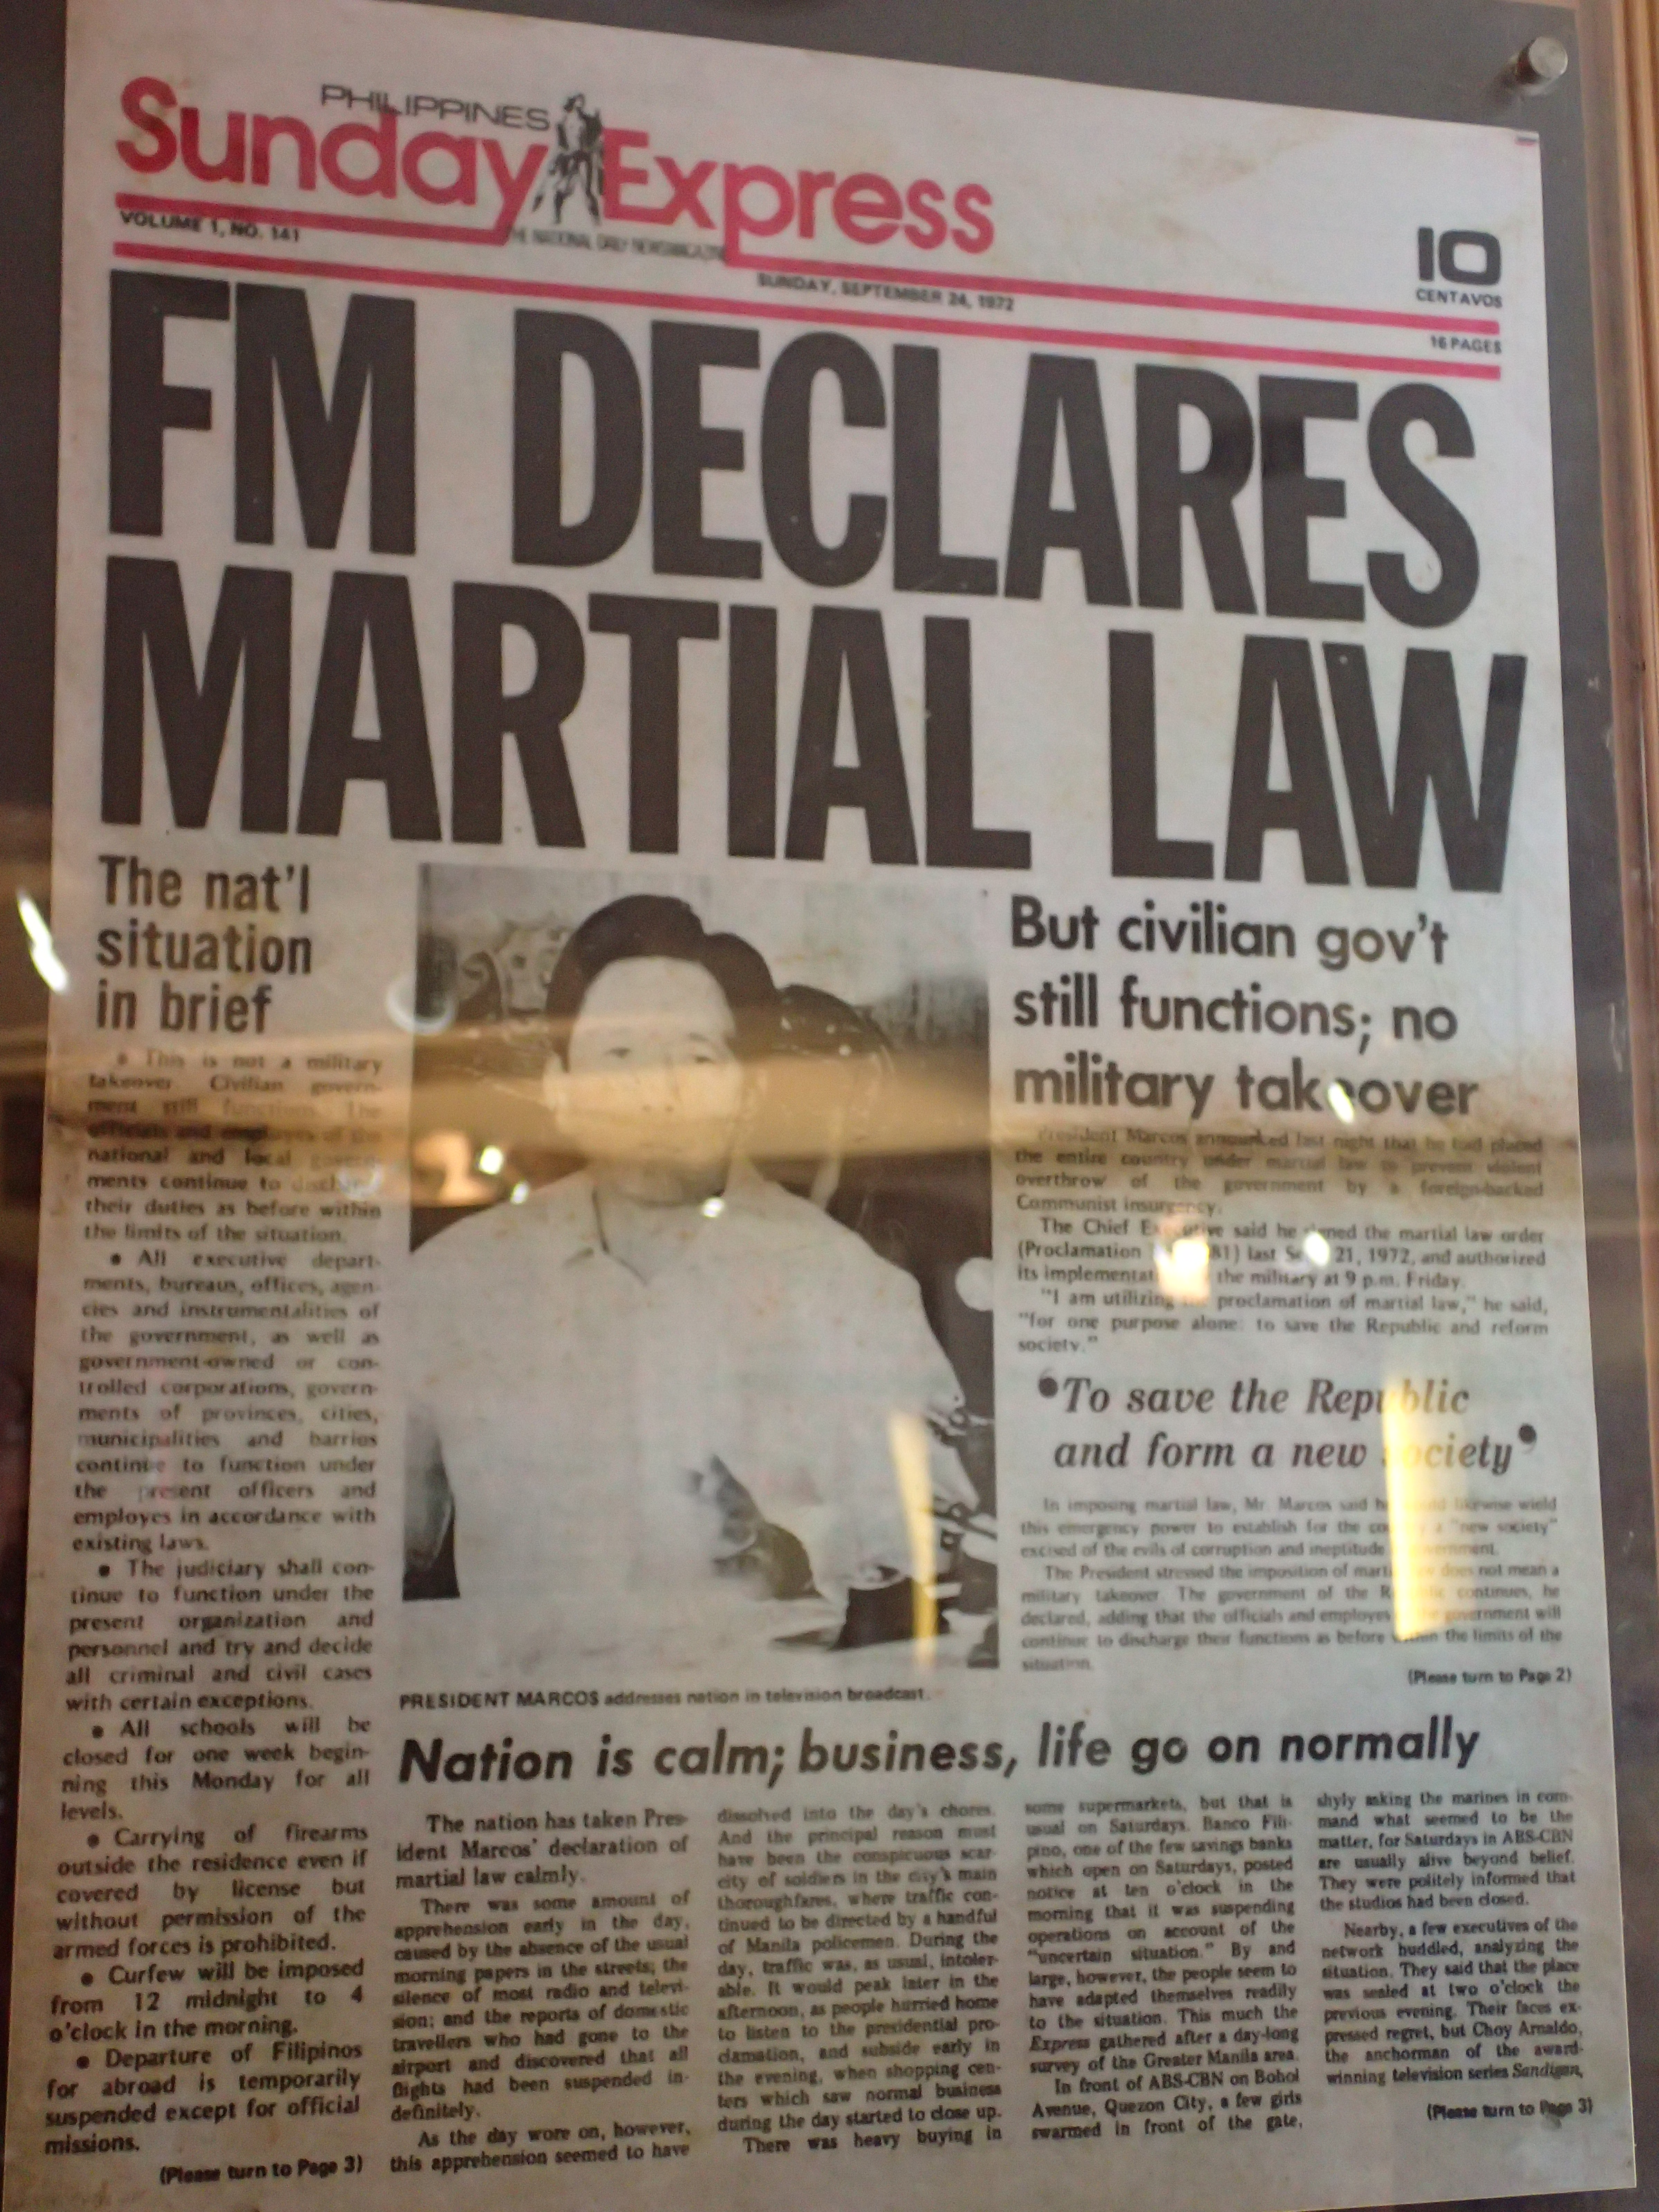 MARTIAL LAW. The front page of a newspaper reporting Martial Law declaration. Newspapers and other media outlets became state-controlled during Martial Law.